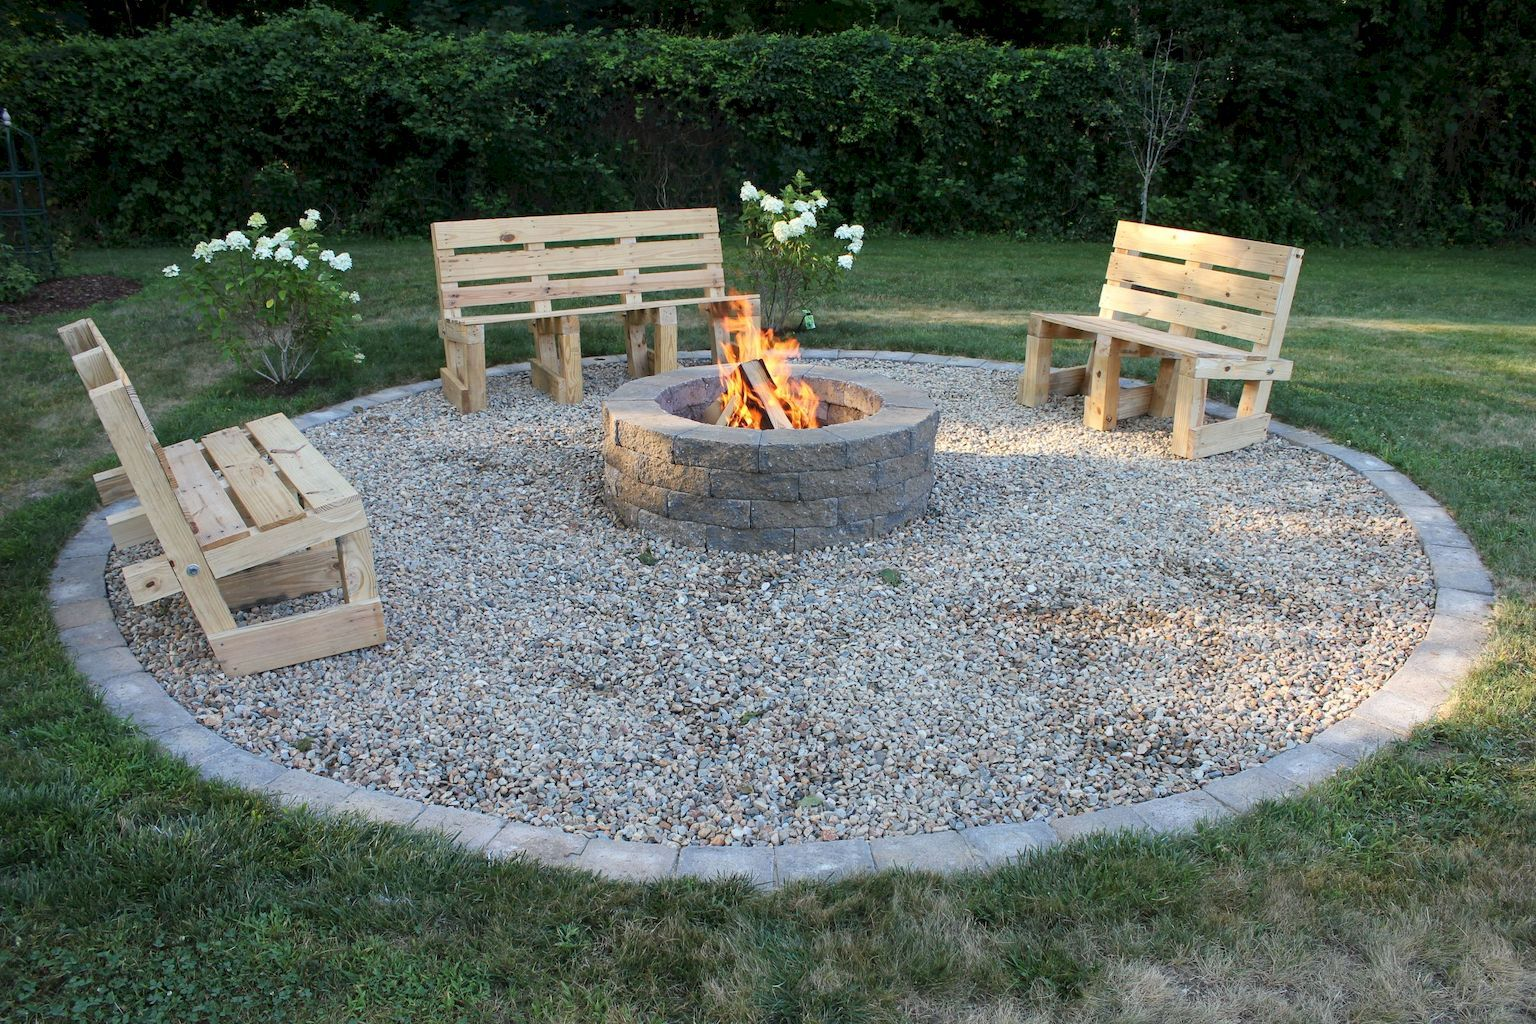 70 Easy Diy Fire Pit Ideas For Backyard Landscaping With Images